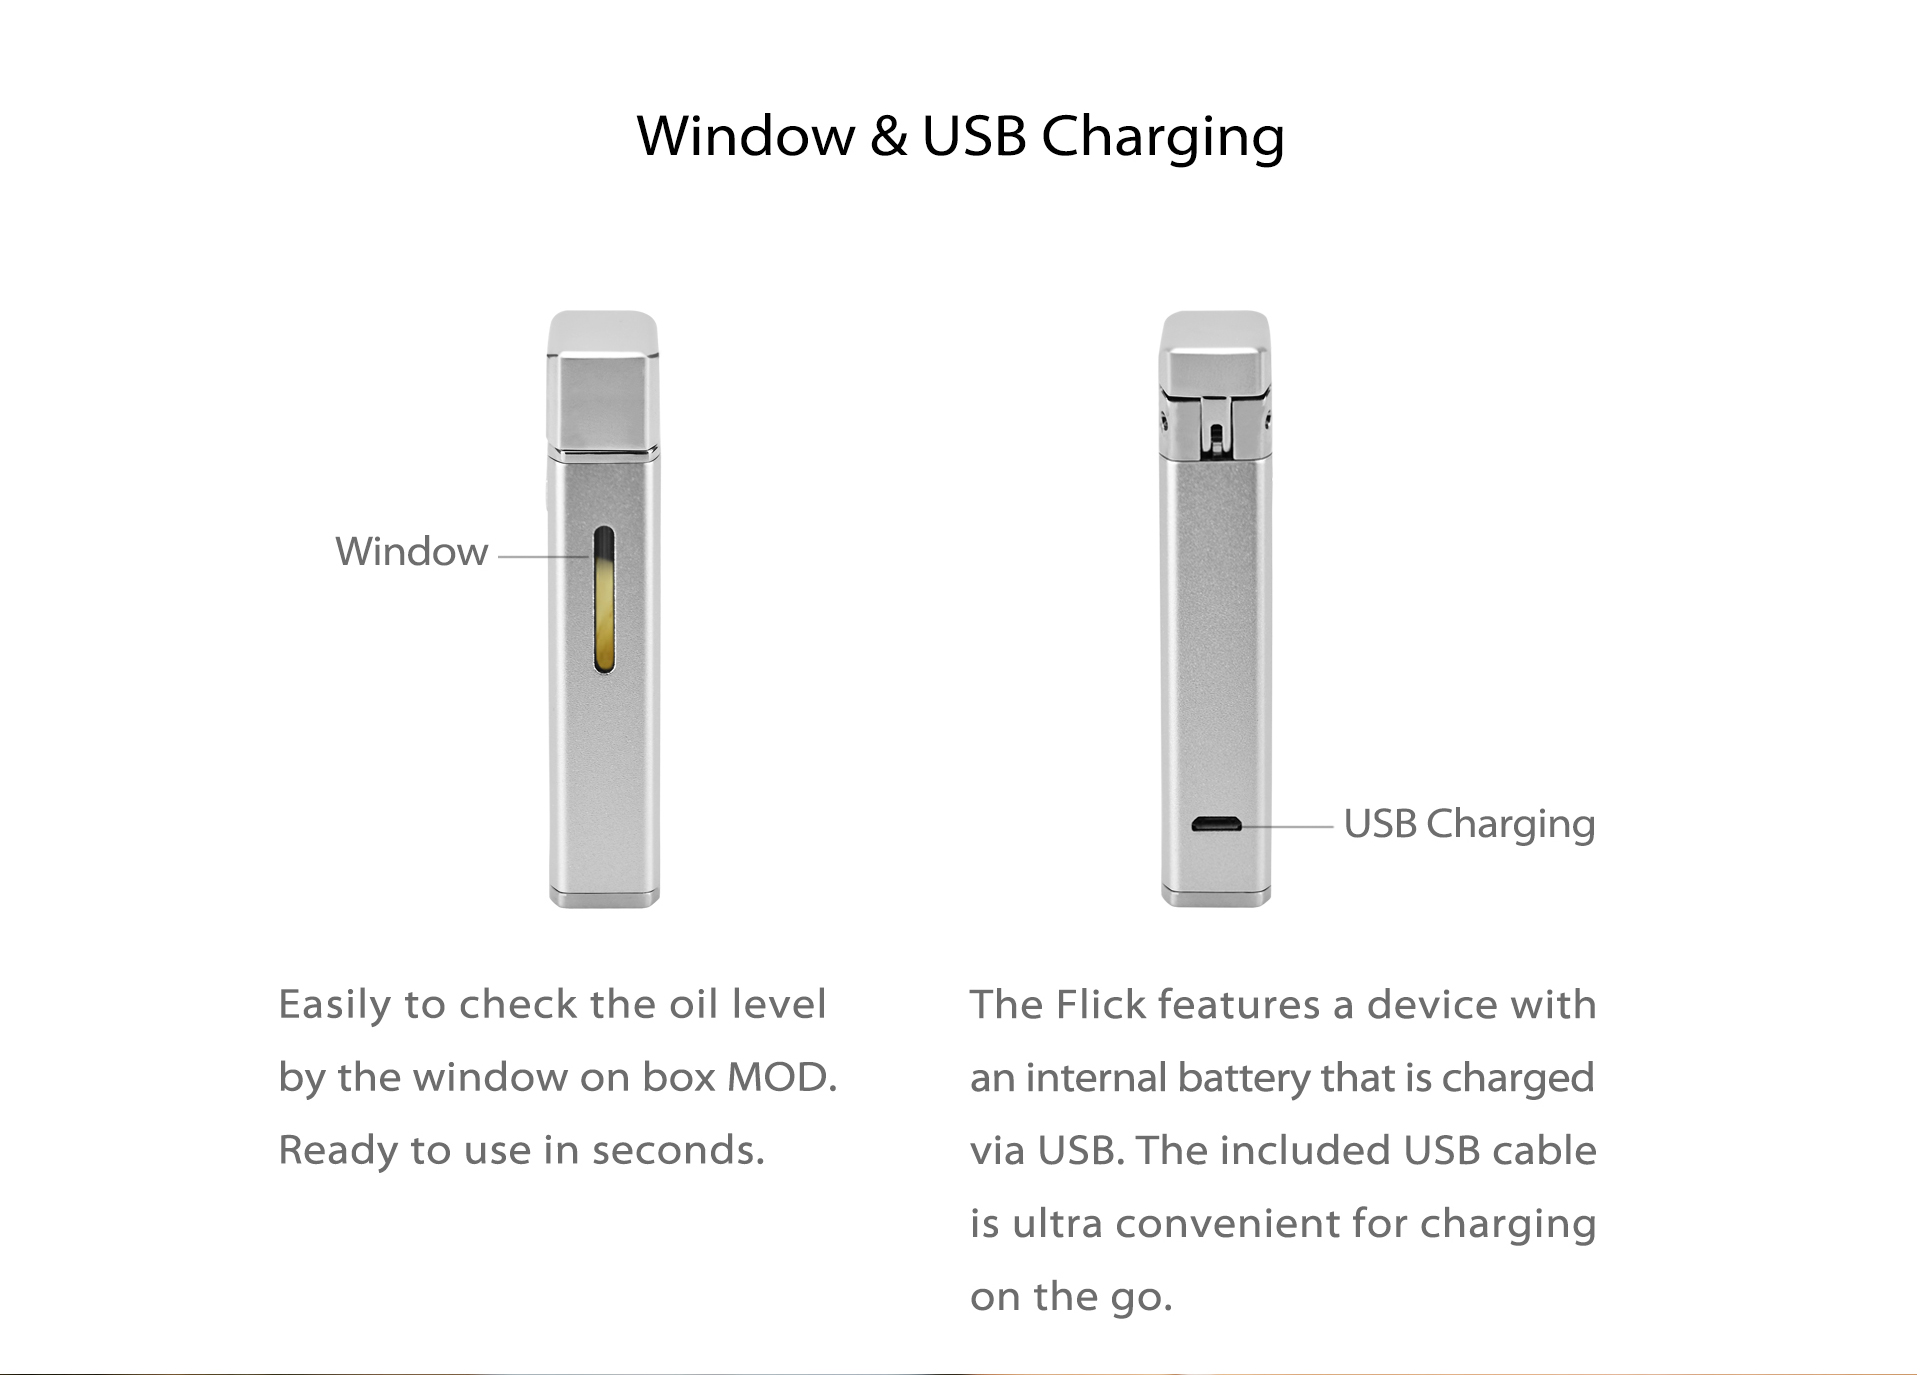 Yocan Flick Window & USB Charging, Micro USB charging port, easy and convenient to get charged